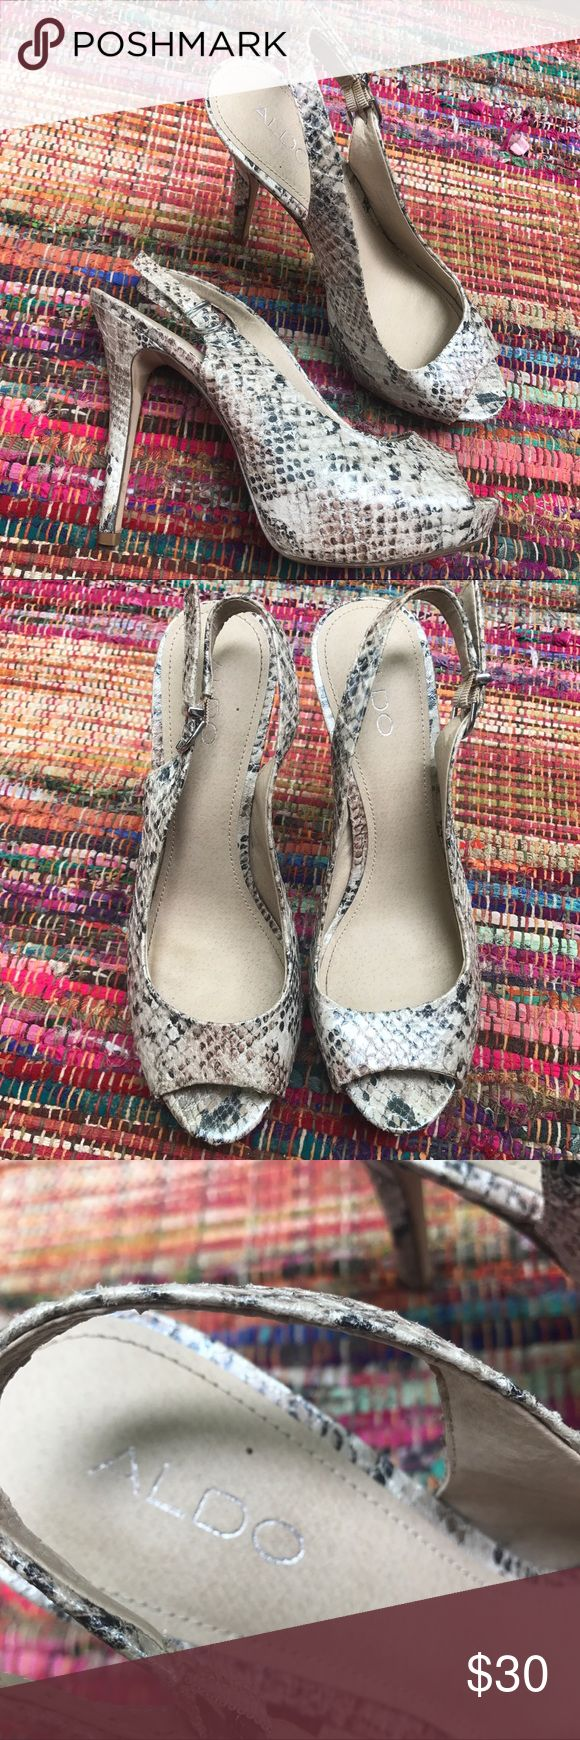 PRICE CUT ✂️ ALDO Snakeskin heels Shiny silver reflective material in some spots  Rack Aldo Shoes Heels